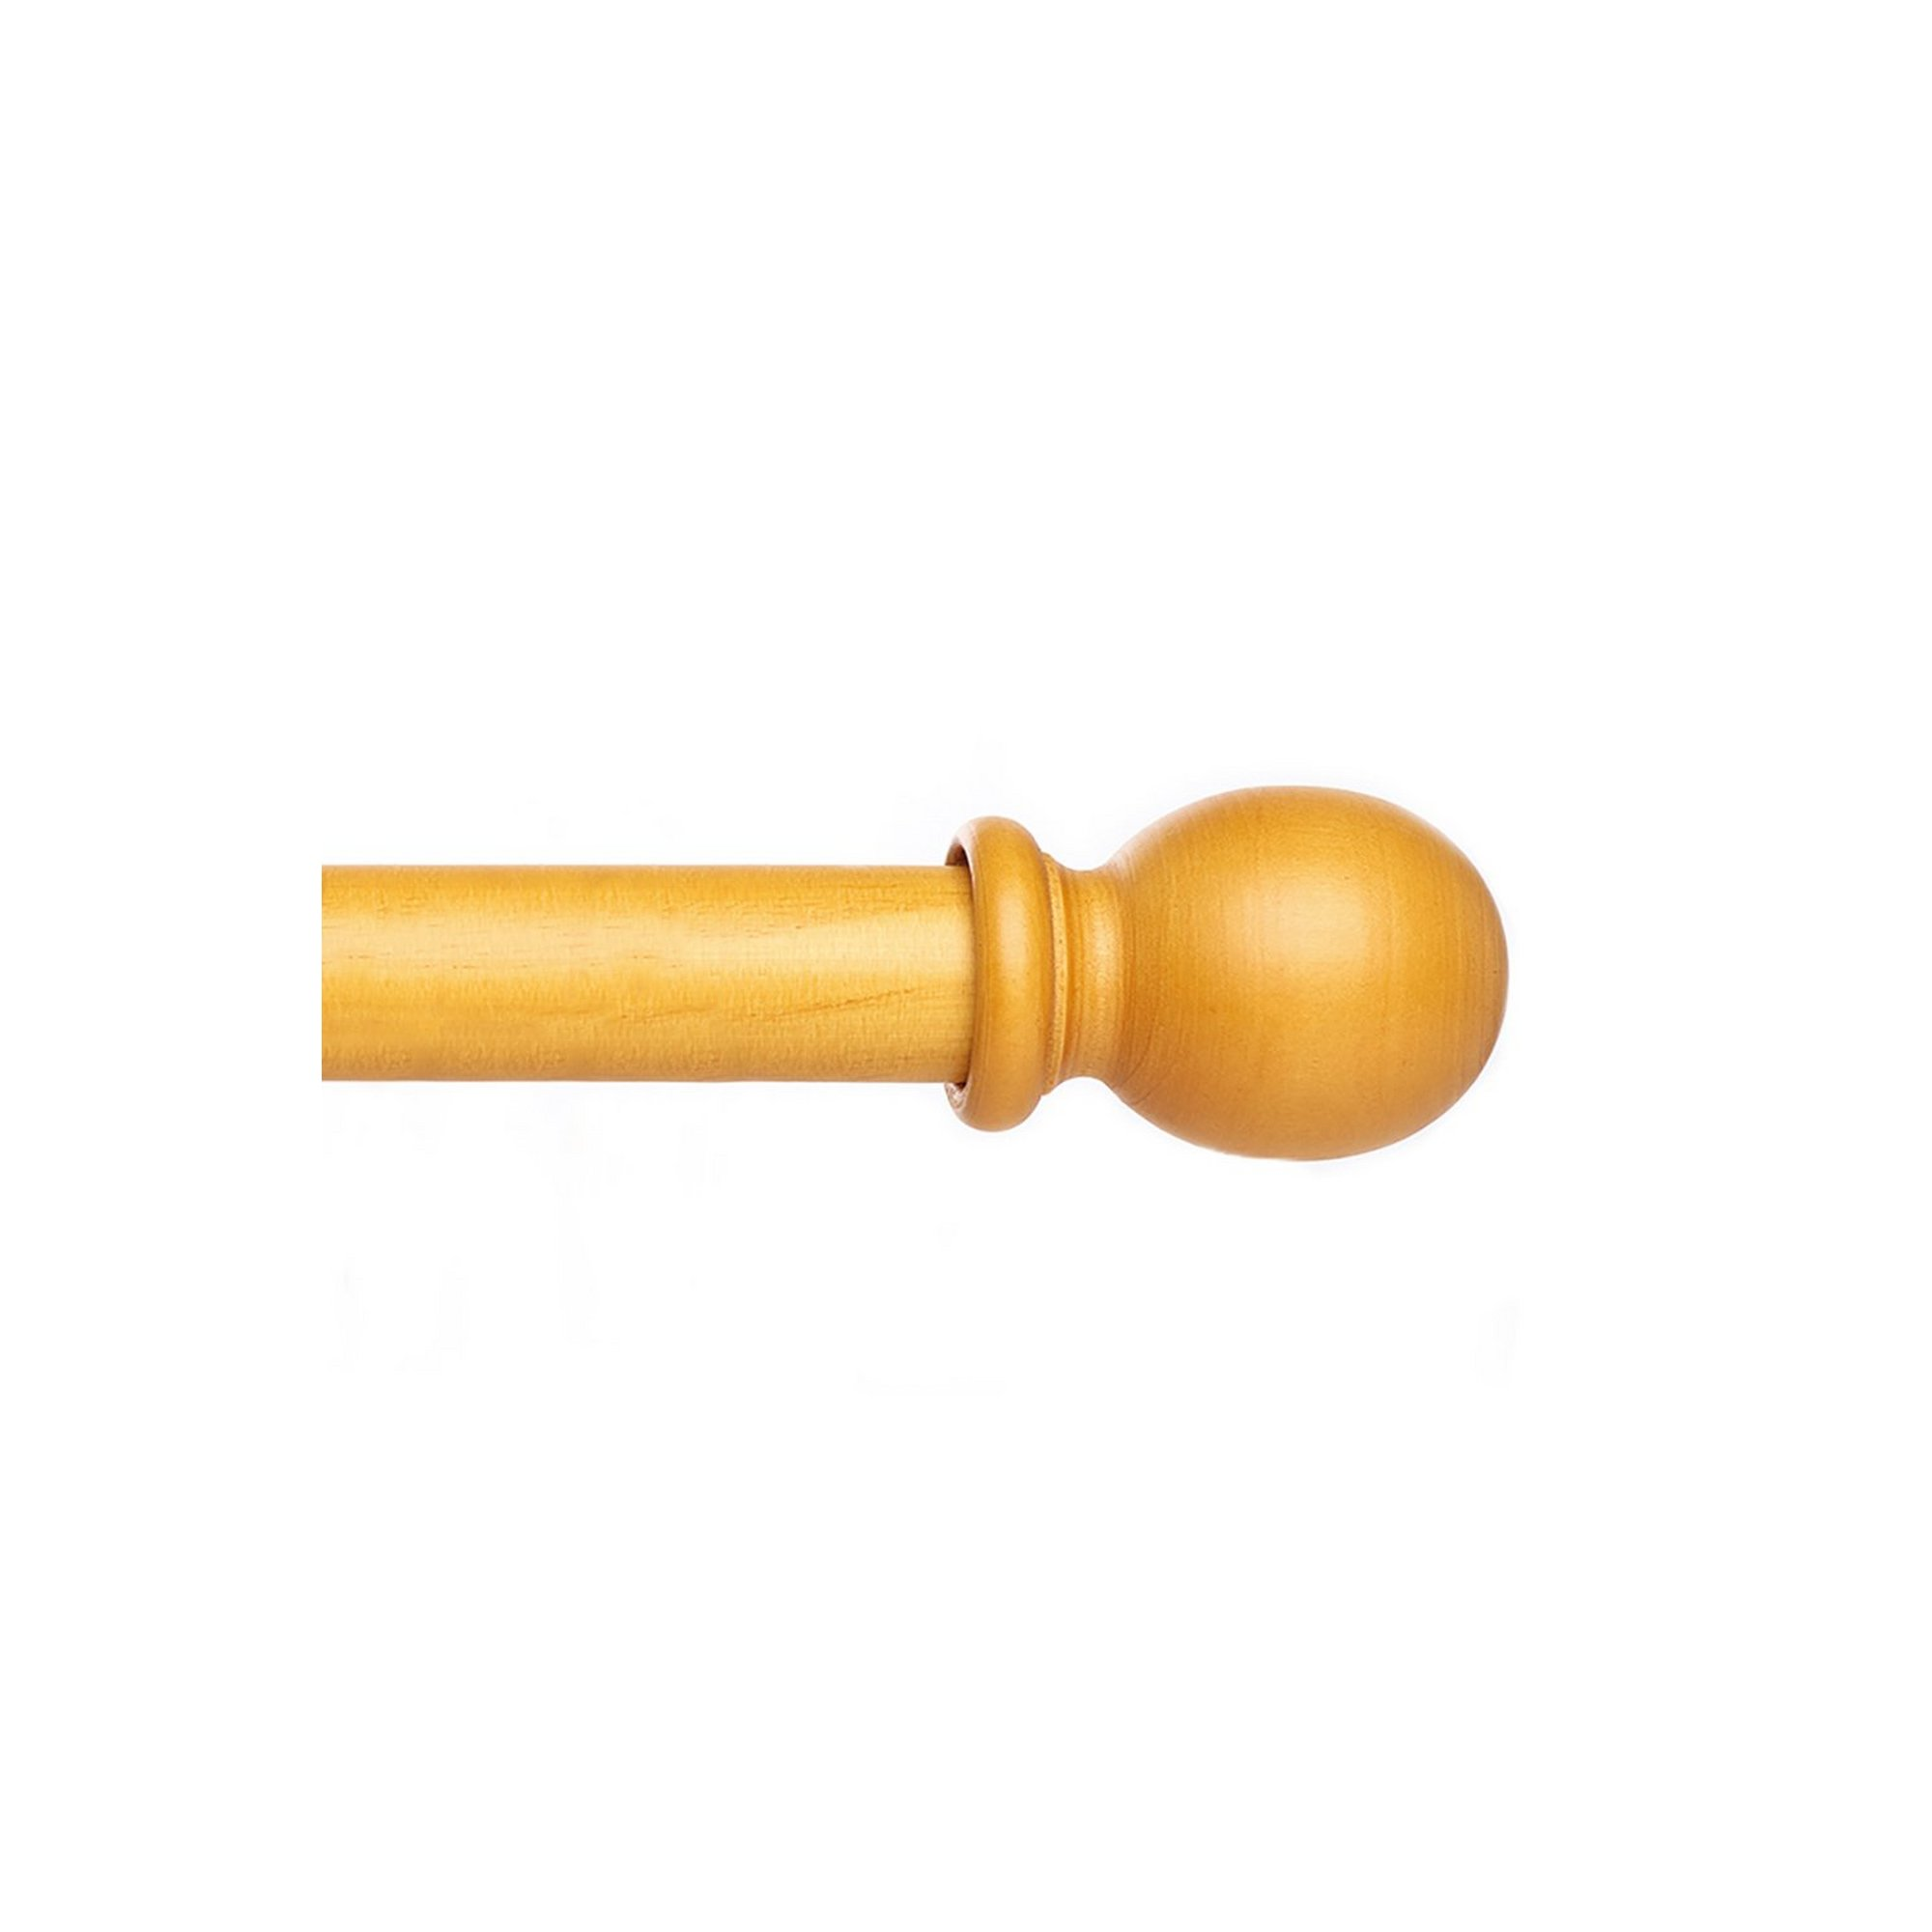 Image of Wooden Curtain Pole Set